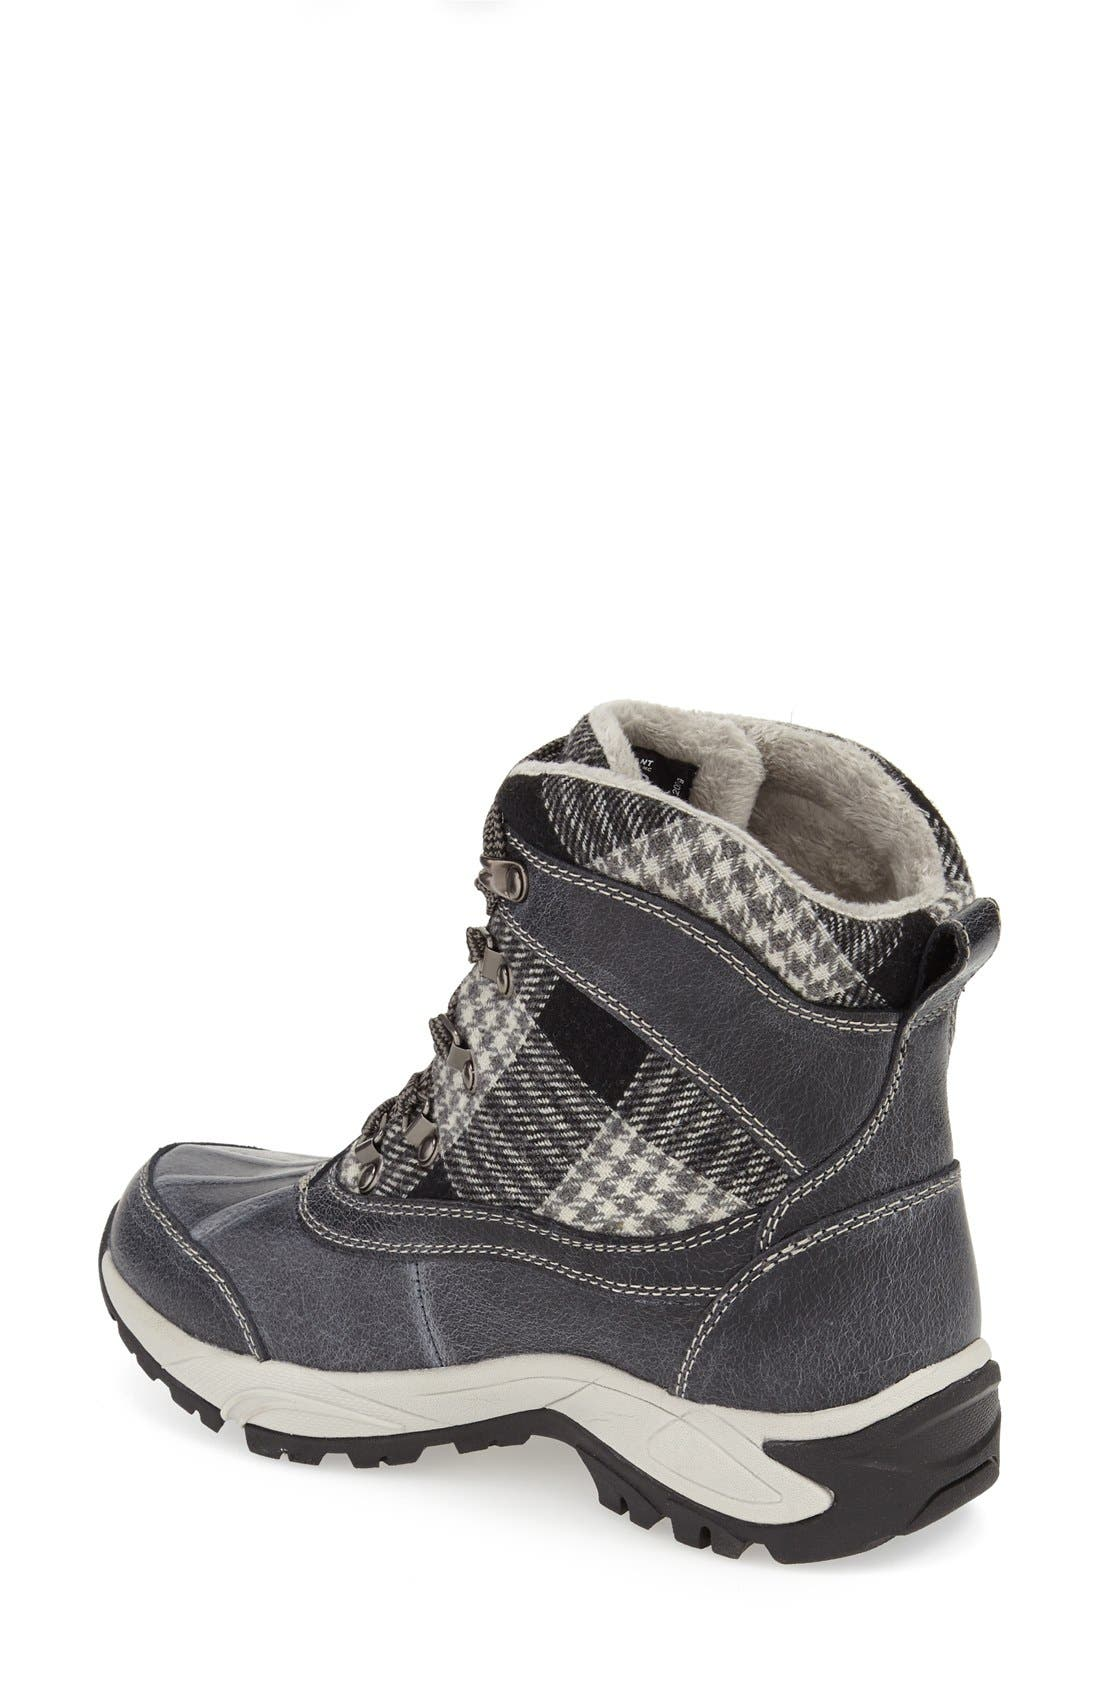 Rochelle Waterproof Insulated Winter Boot,                             Alternate thumbnail 3, color,                             002